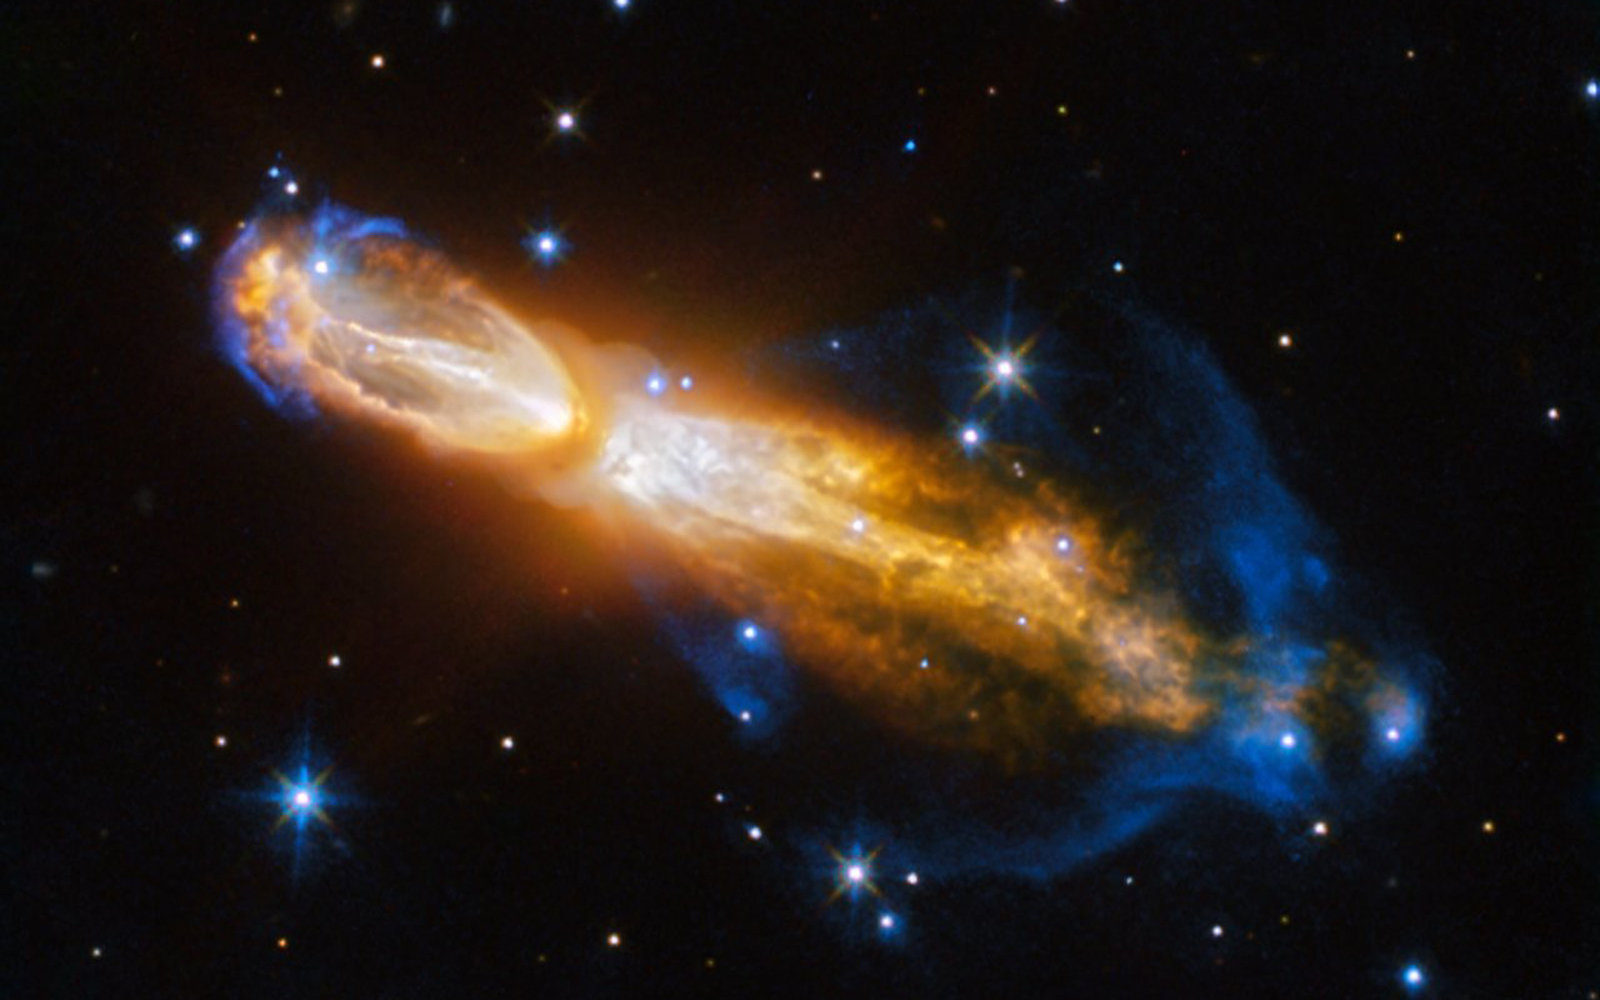 NASA's Hubble Telescope Captures Rare Image of Dying 'Rotten Egg' Star